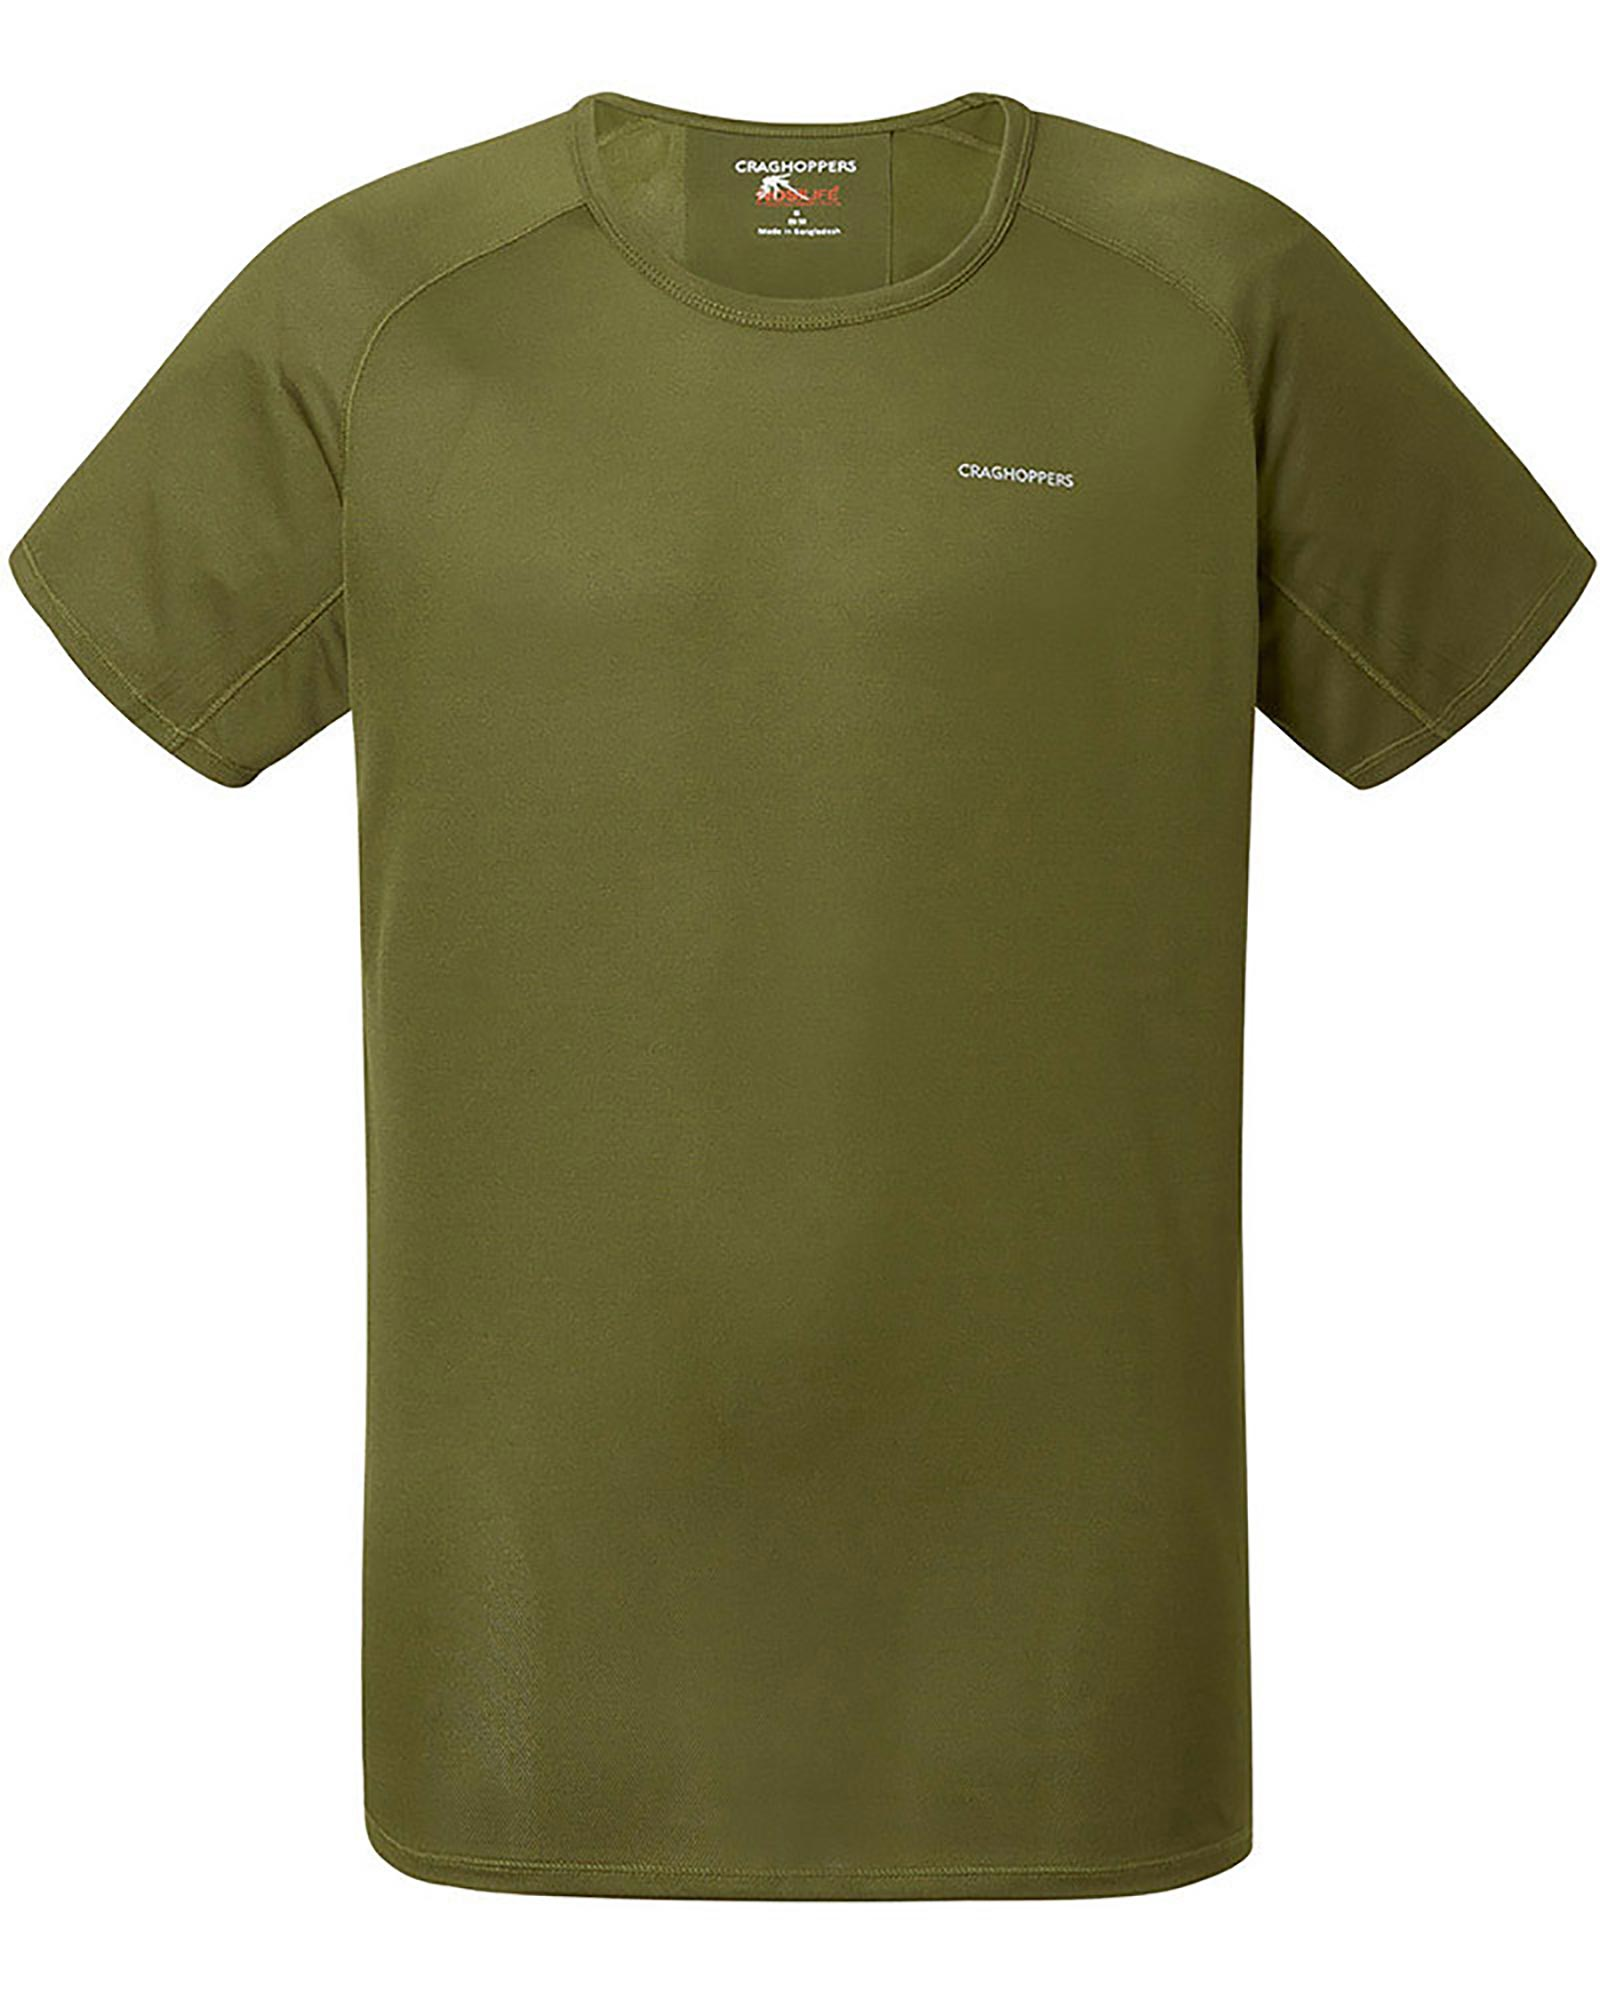 Craghoppers Mens S/s Nosilife Baselayer T-shirt